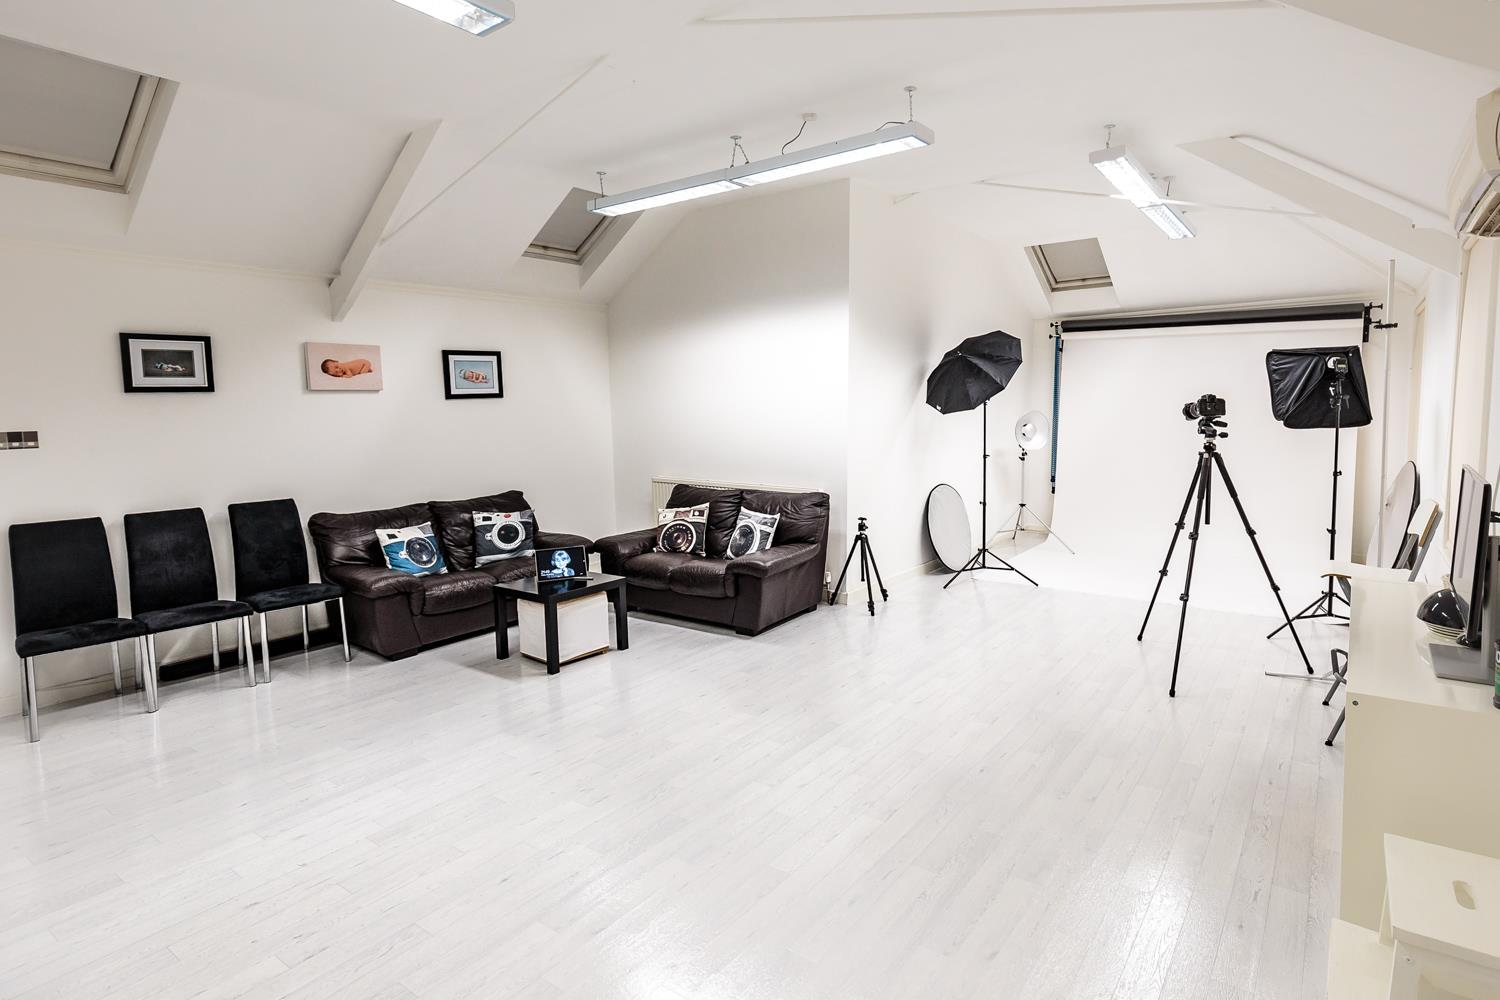 Our new studio! - Update